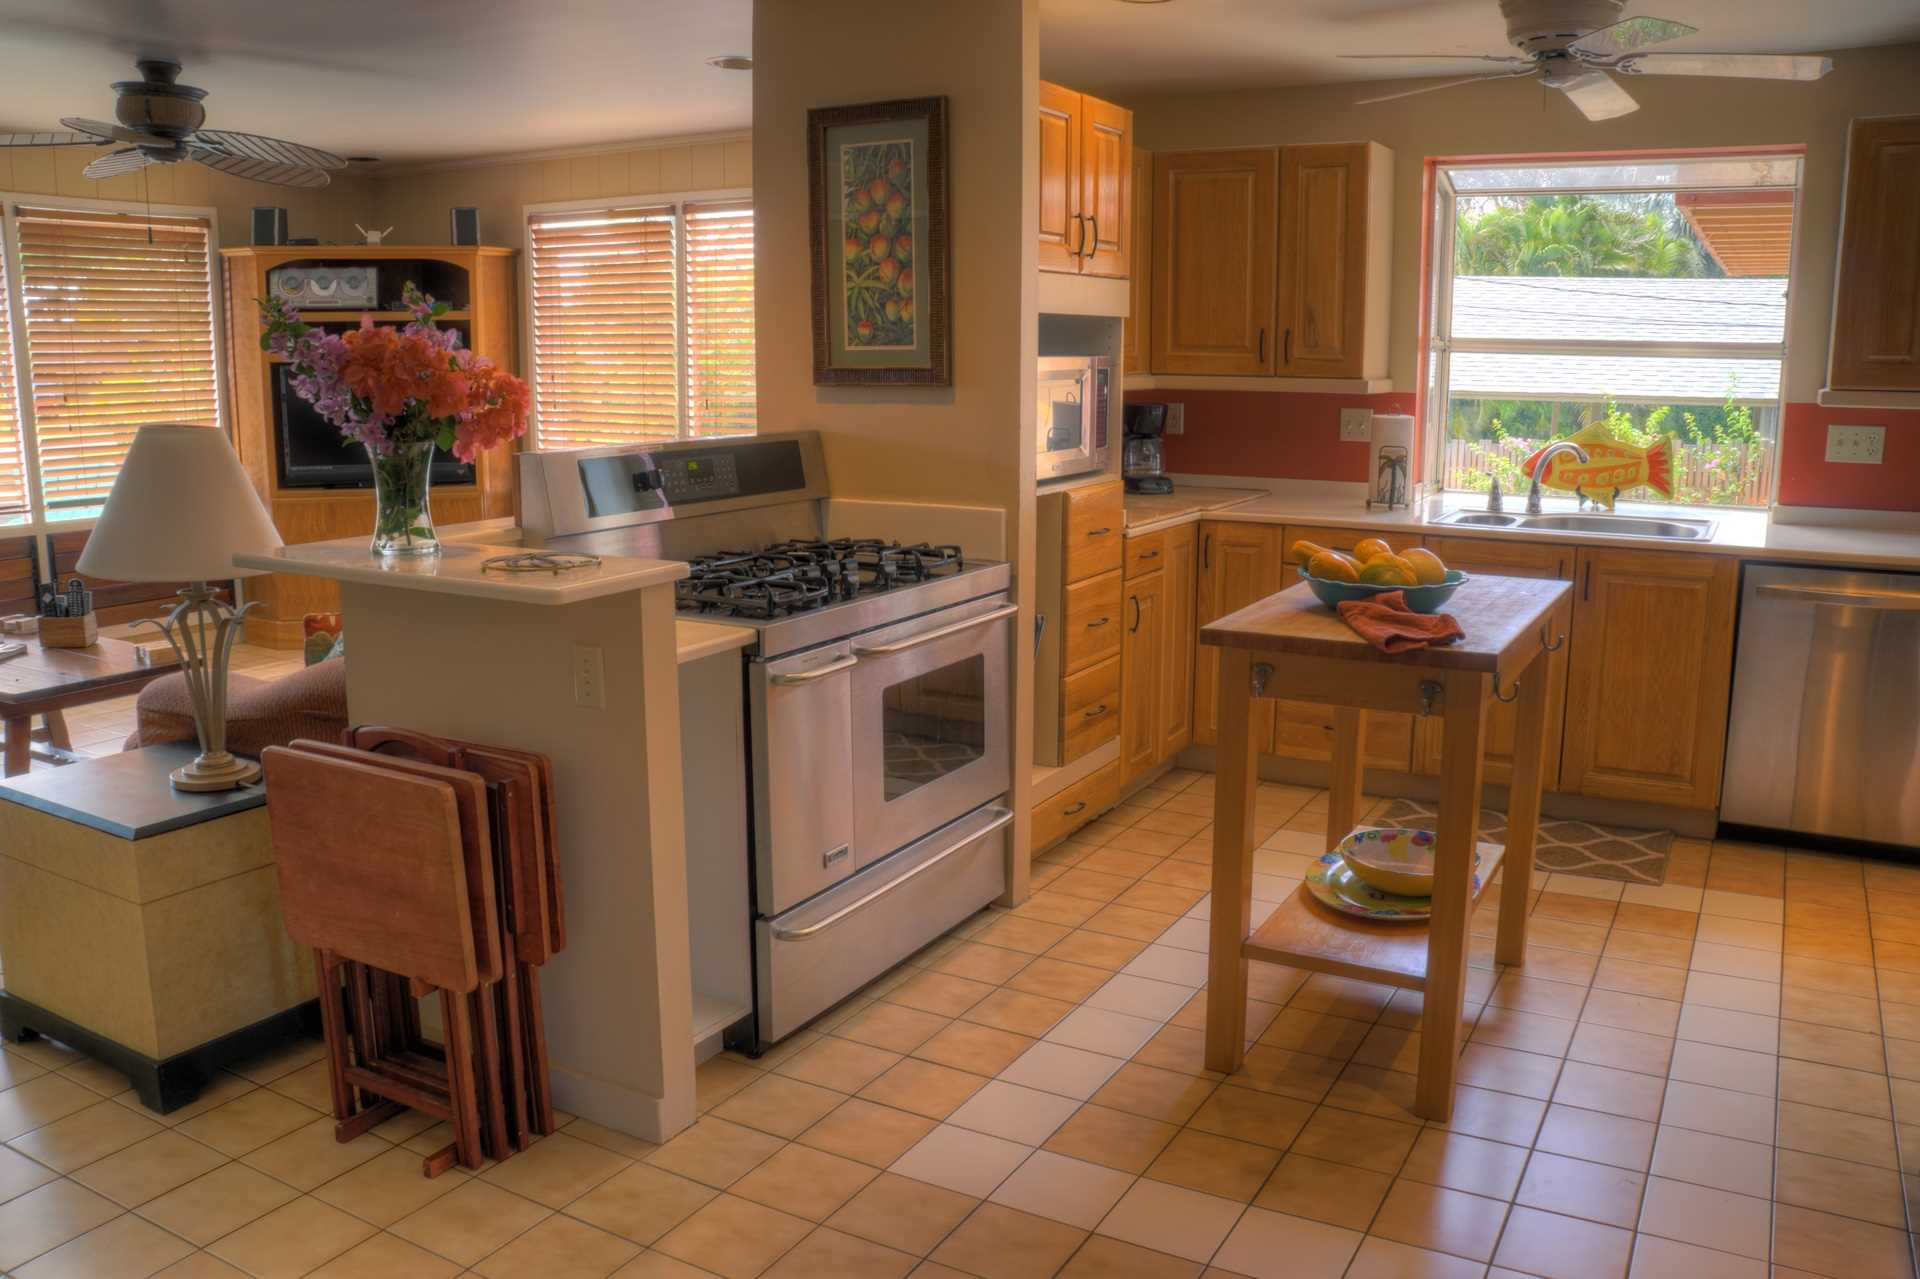 A fully equipped kitchen with corian tops and island cutting board provide ample space to create your gourmet meals